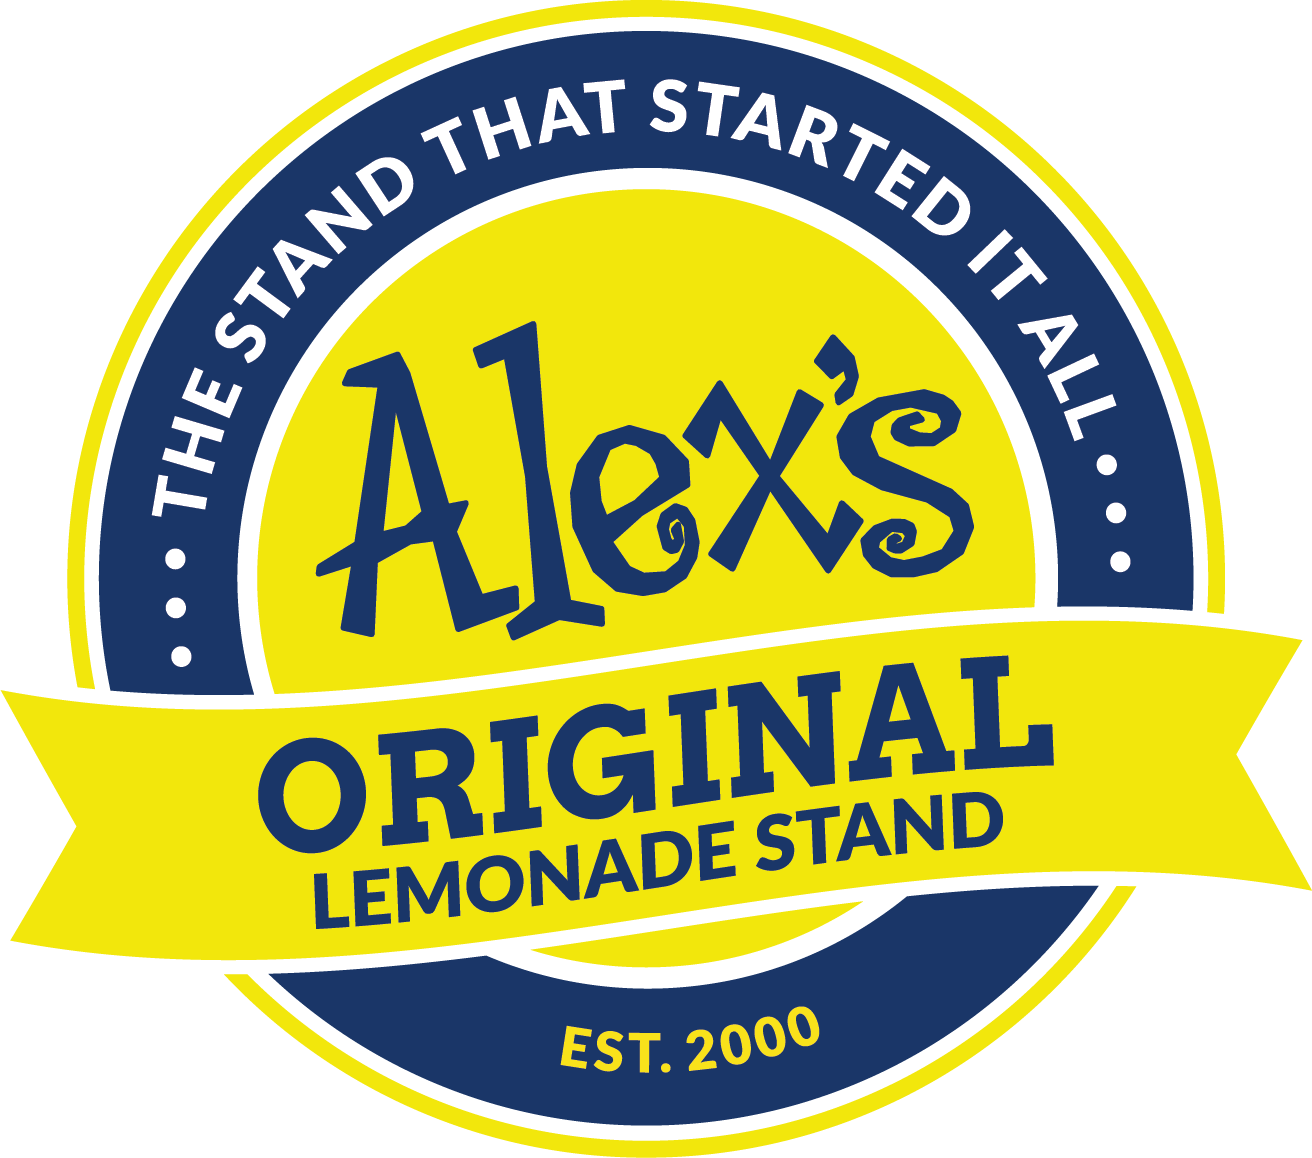 Alex's Original Lemonade Stand Logo